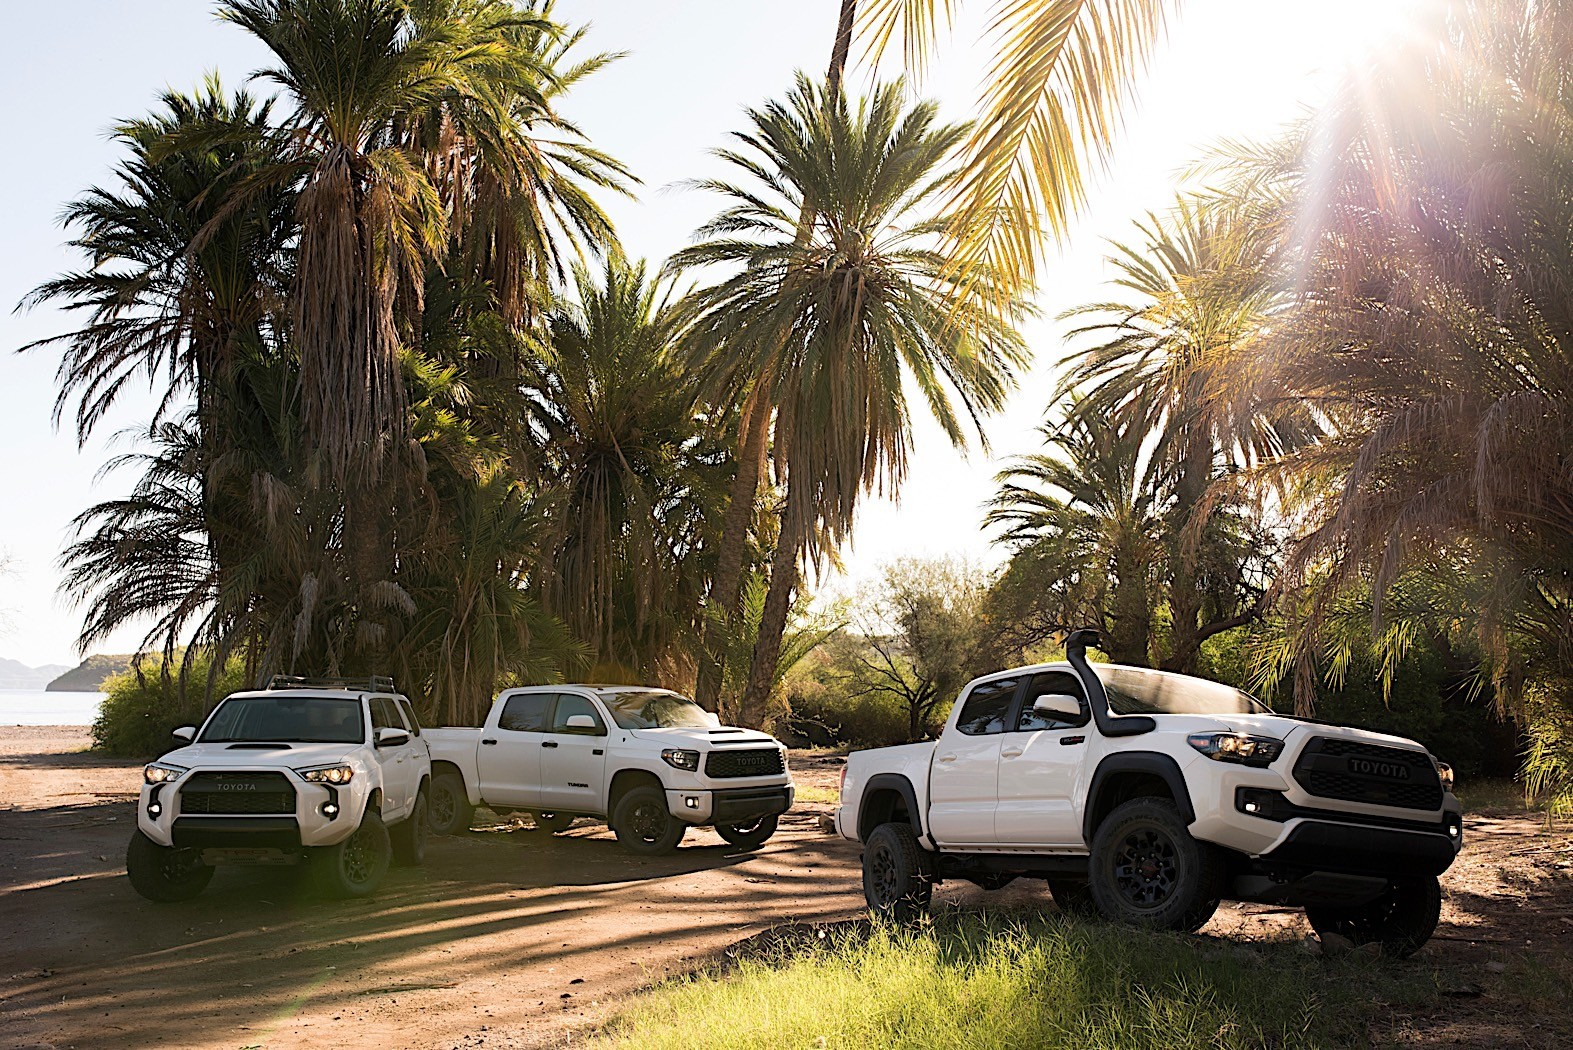 Toyota Tacoma, Tundra TRD Pro trucks get extra off-road goodies in Chicago